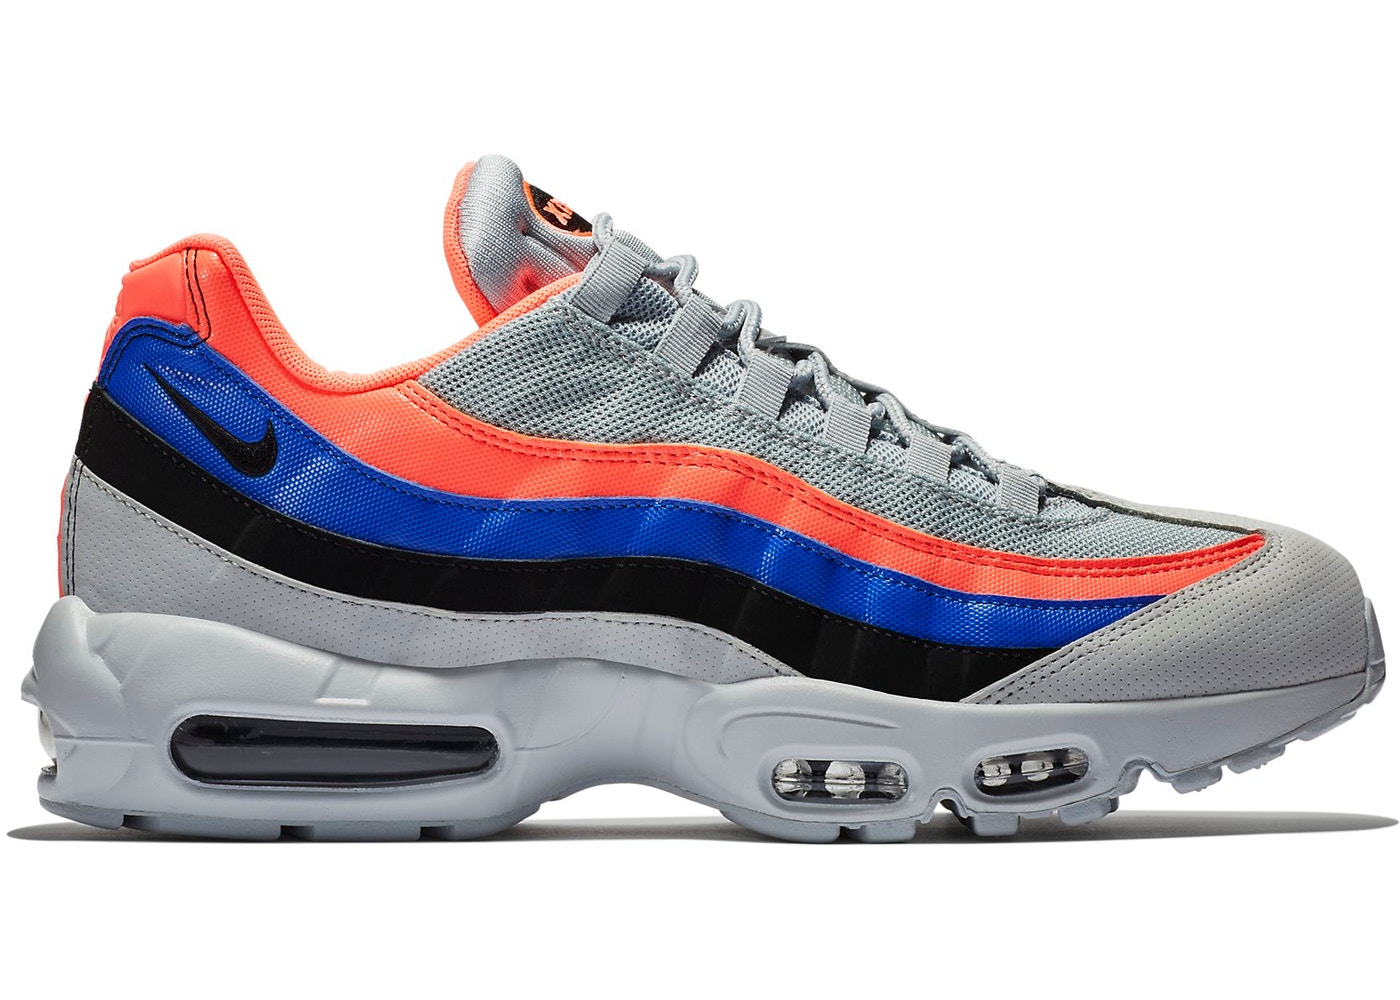 Nike Air Max 95 Ultramarine Platinum